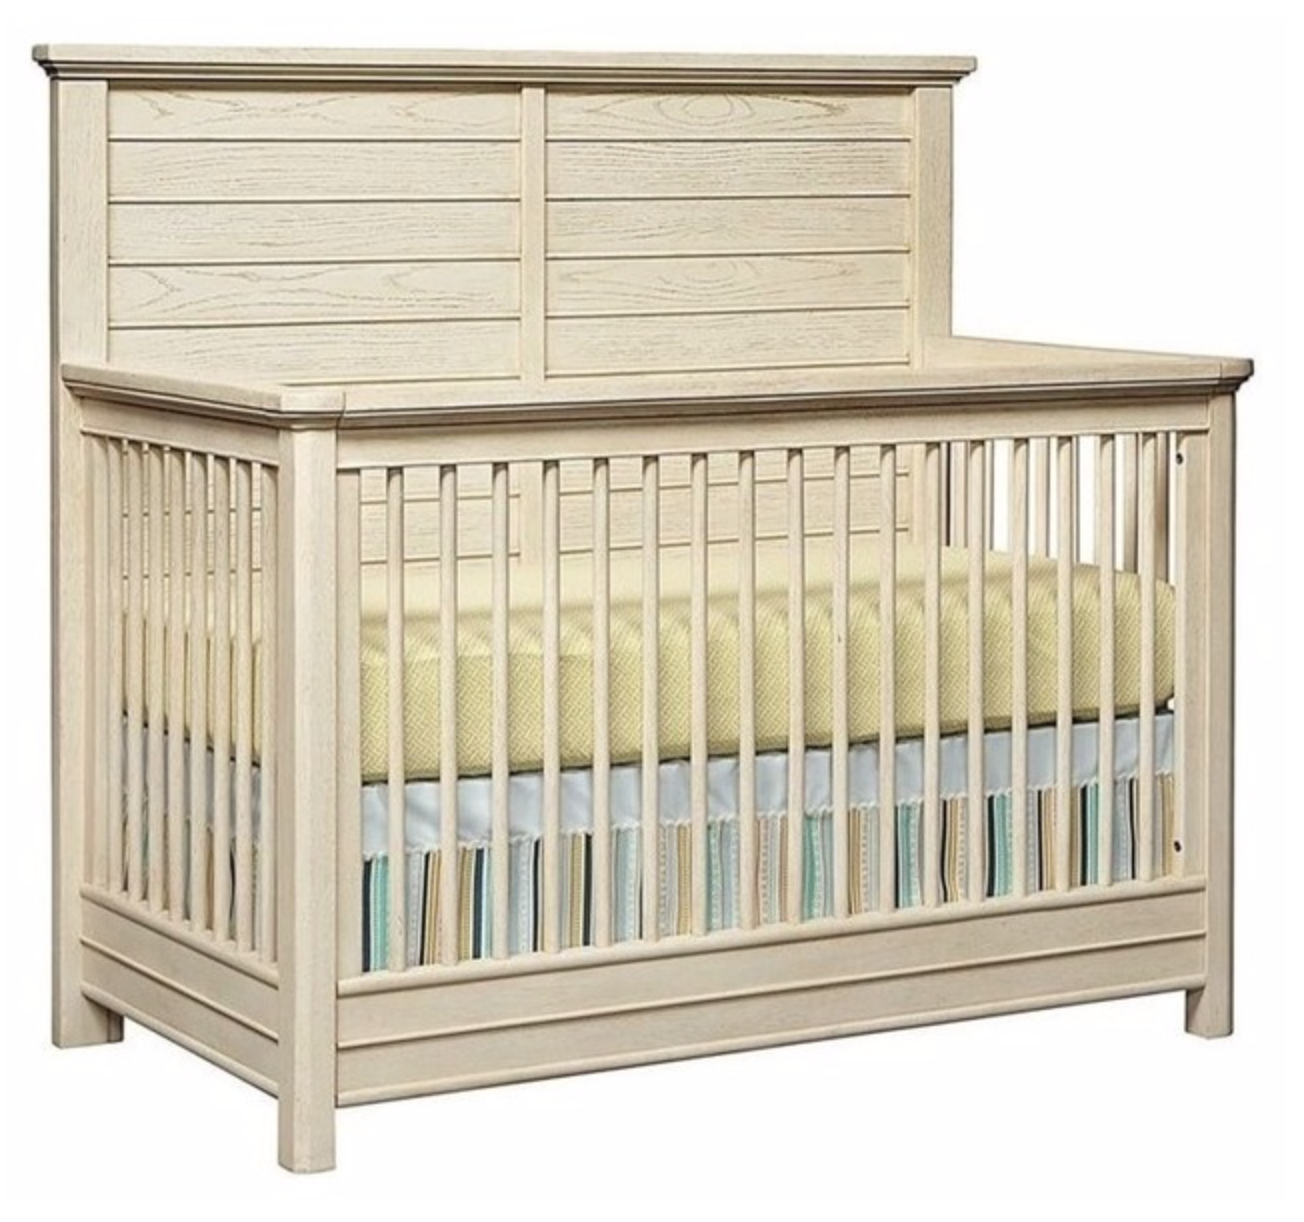 Stone & Leigh | Driftwood Park | Built to Grow Crib